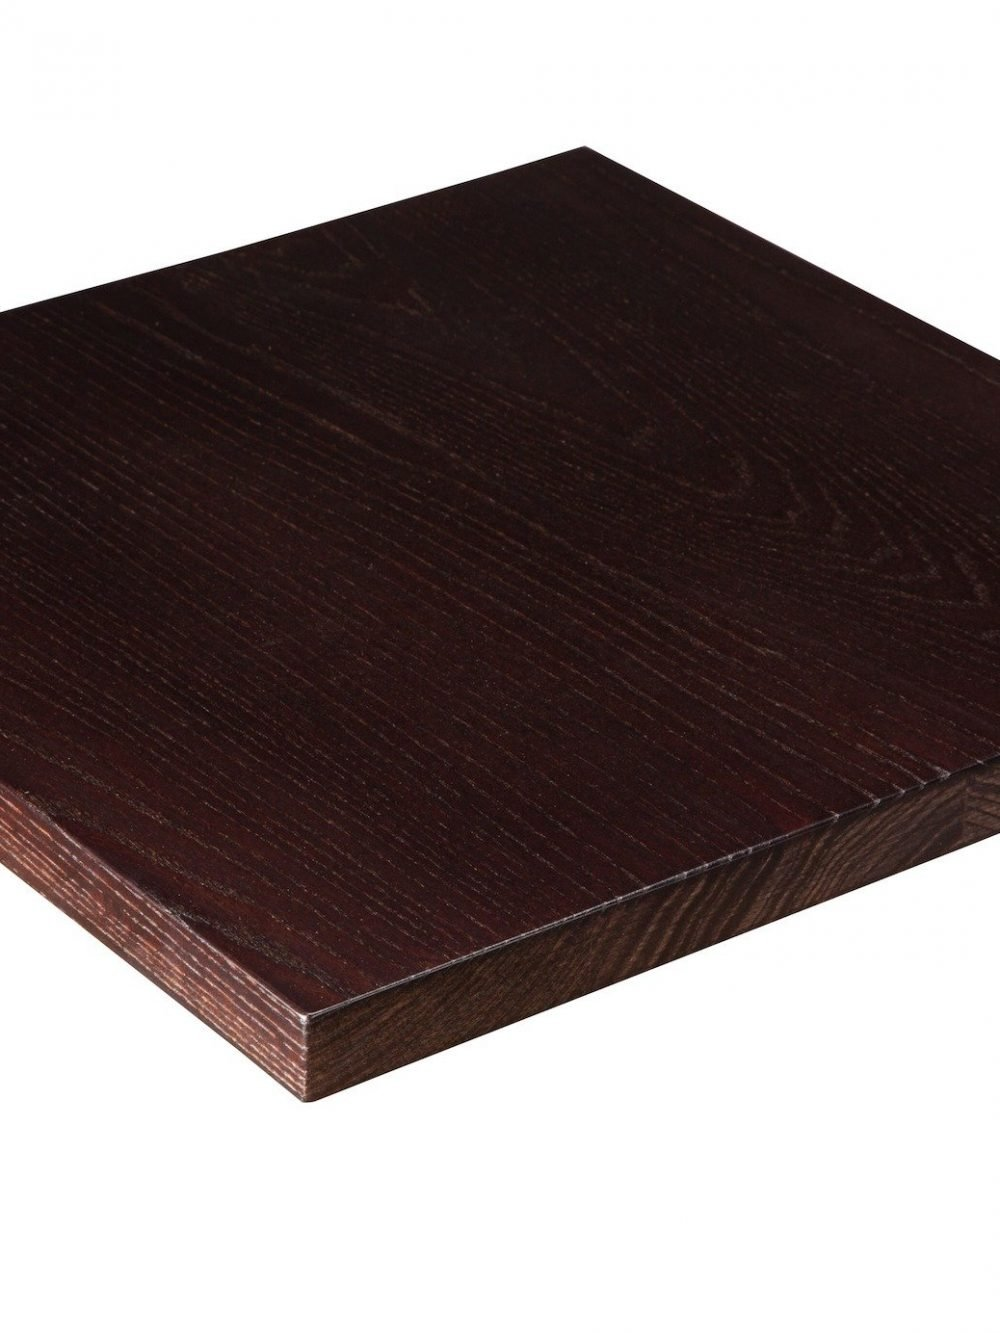 Solid Ash - Wenge Stain